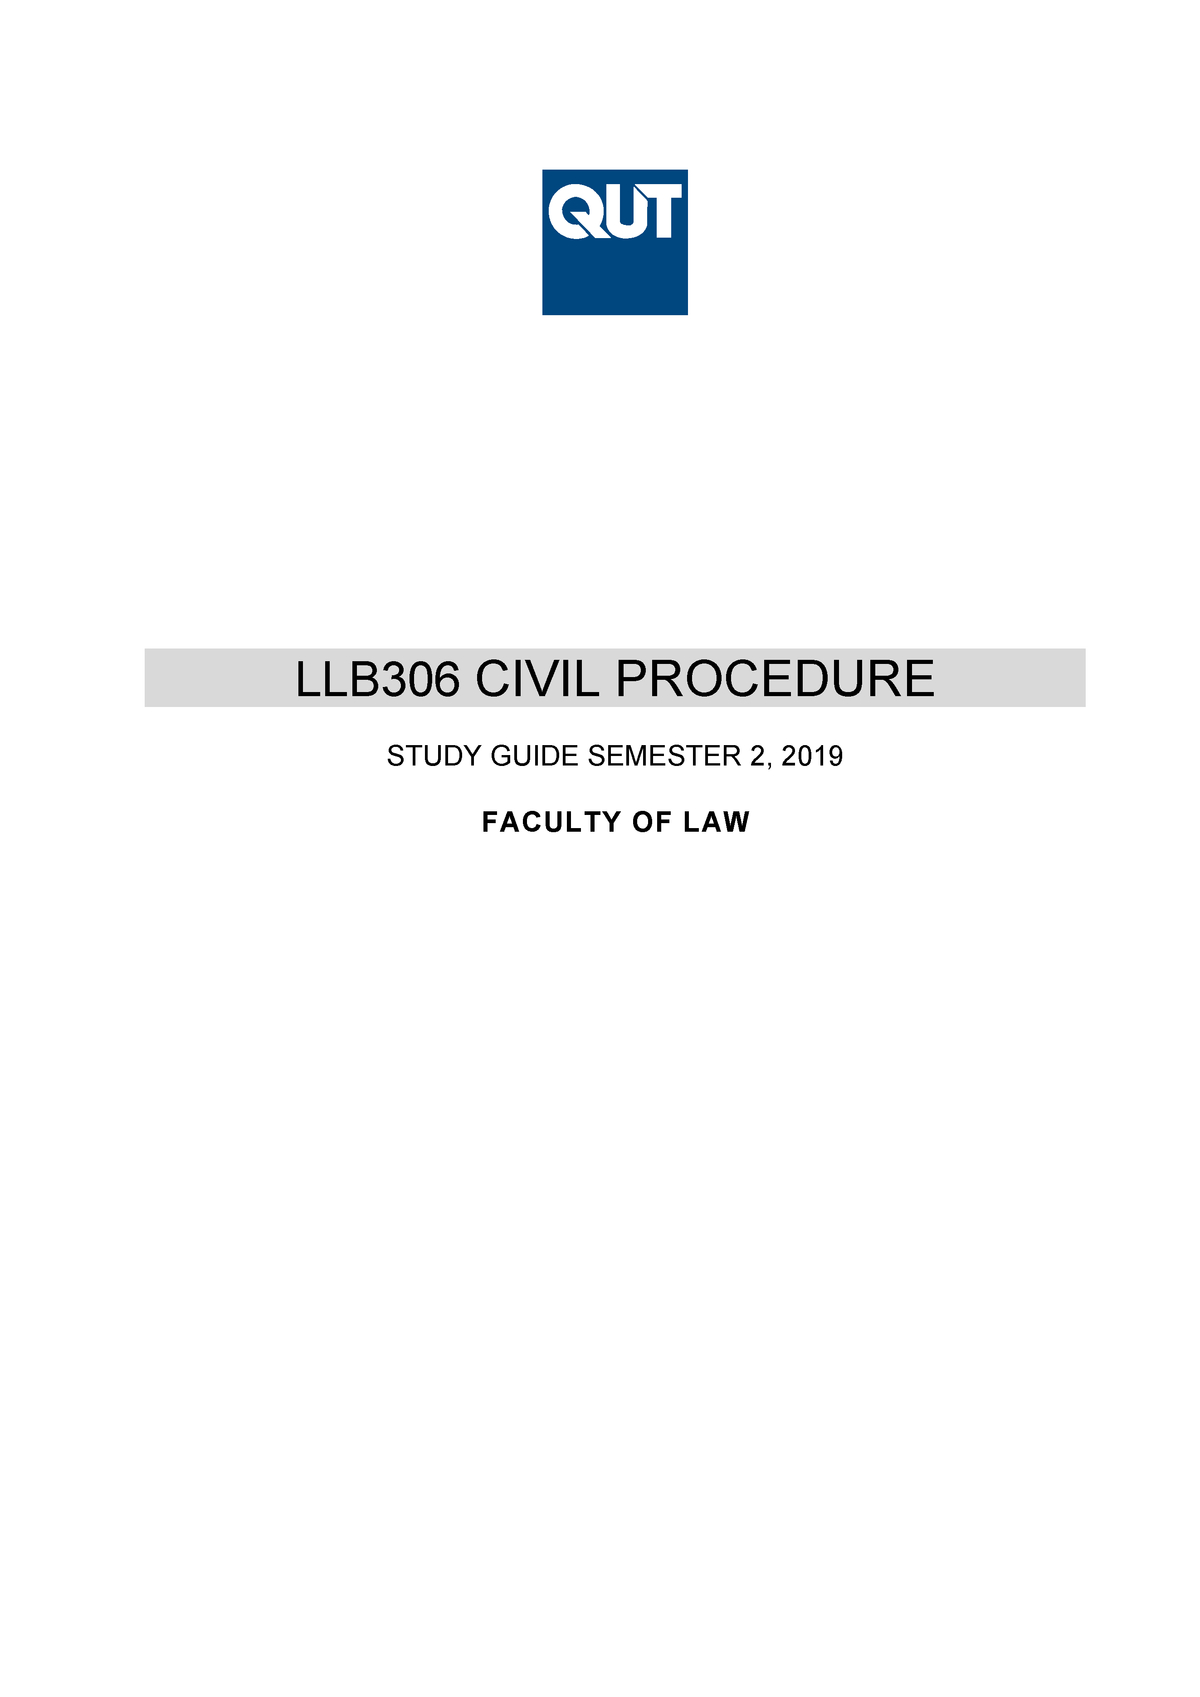 Llb306 Study Guide Sem 2, 2019  Civil Procedure  Qut  Studocu in 2020 Qut Academic Calendar